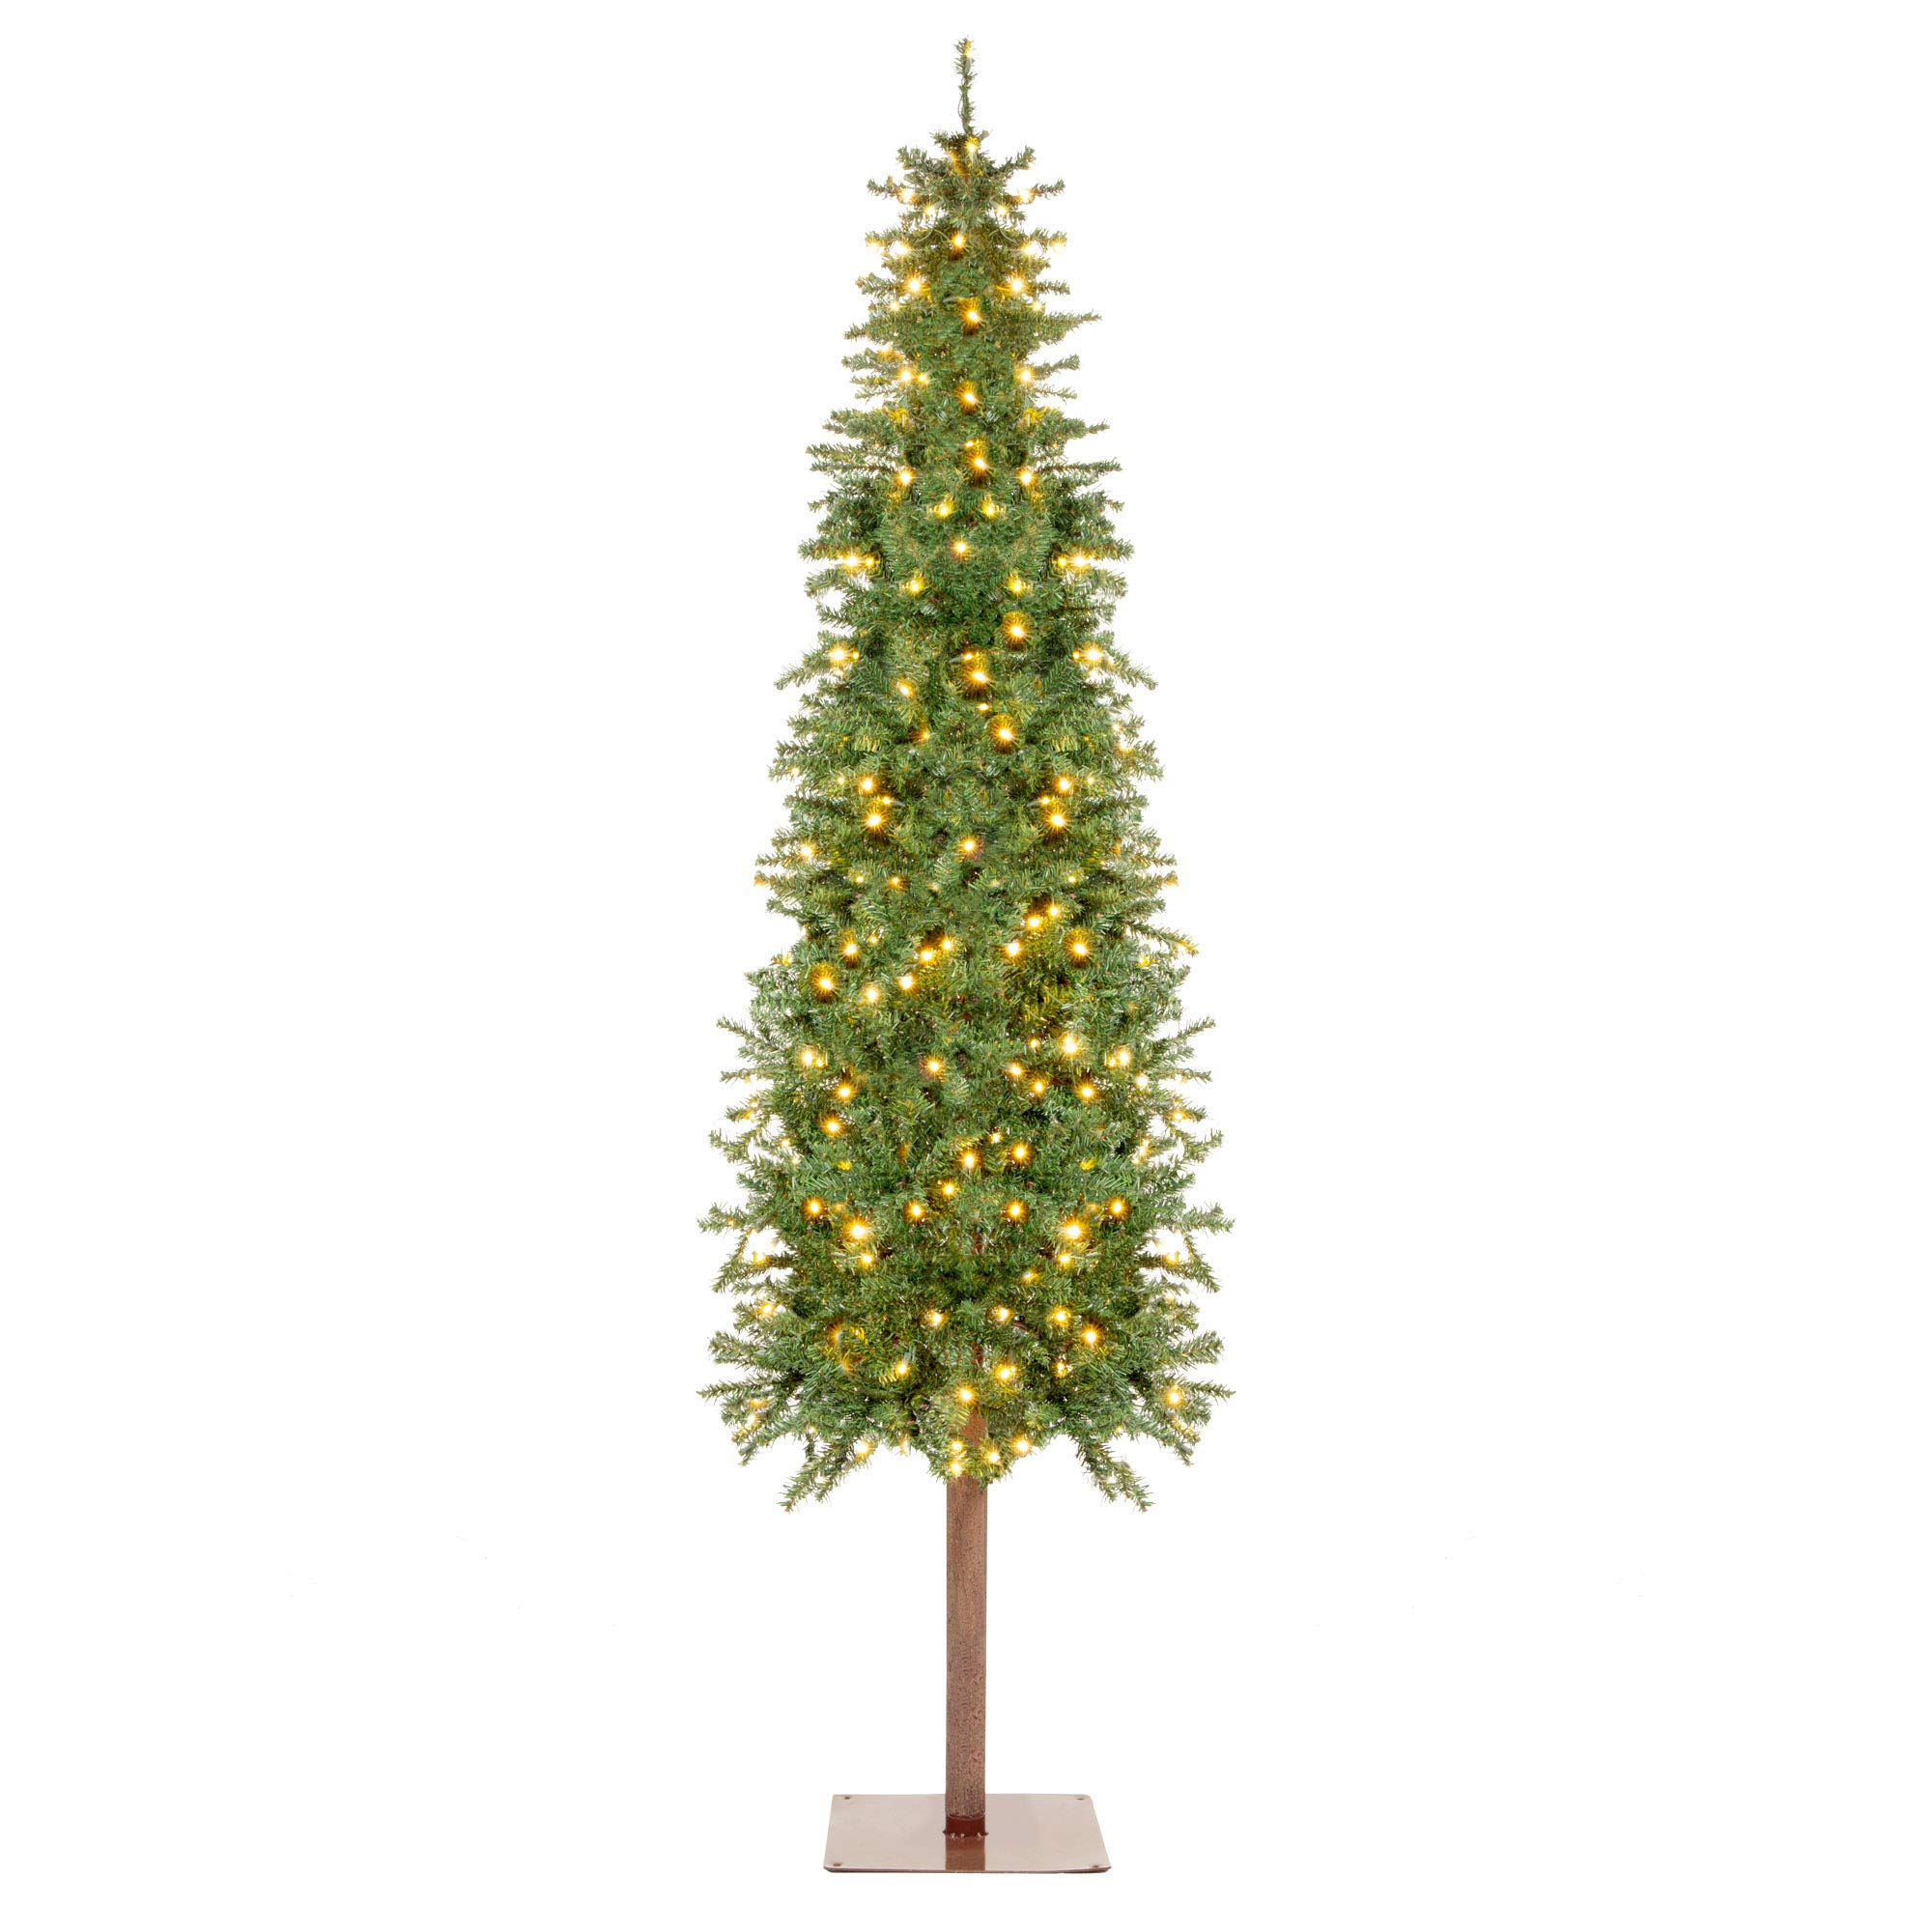 Best Choice Products 7.5ft Pre-Lit Pencil Alpine Christmas Tree Holiday Decoration w/ 350 LED Lights, 975 Tips, Stand